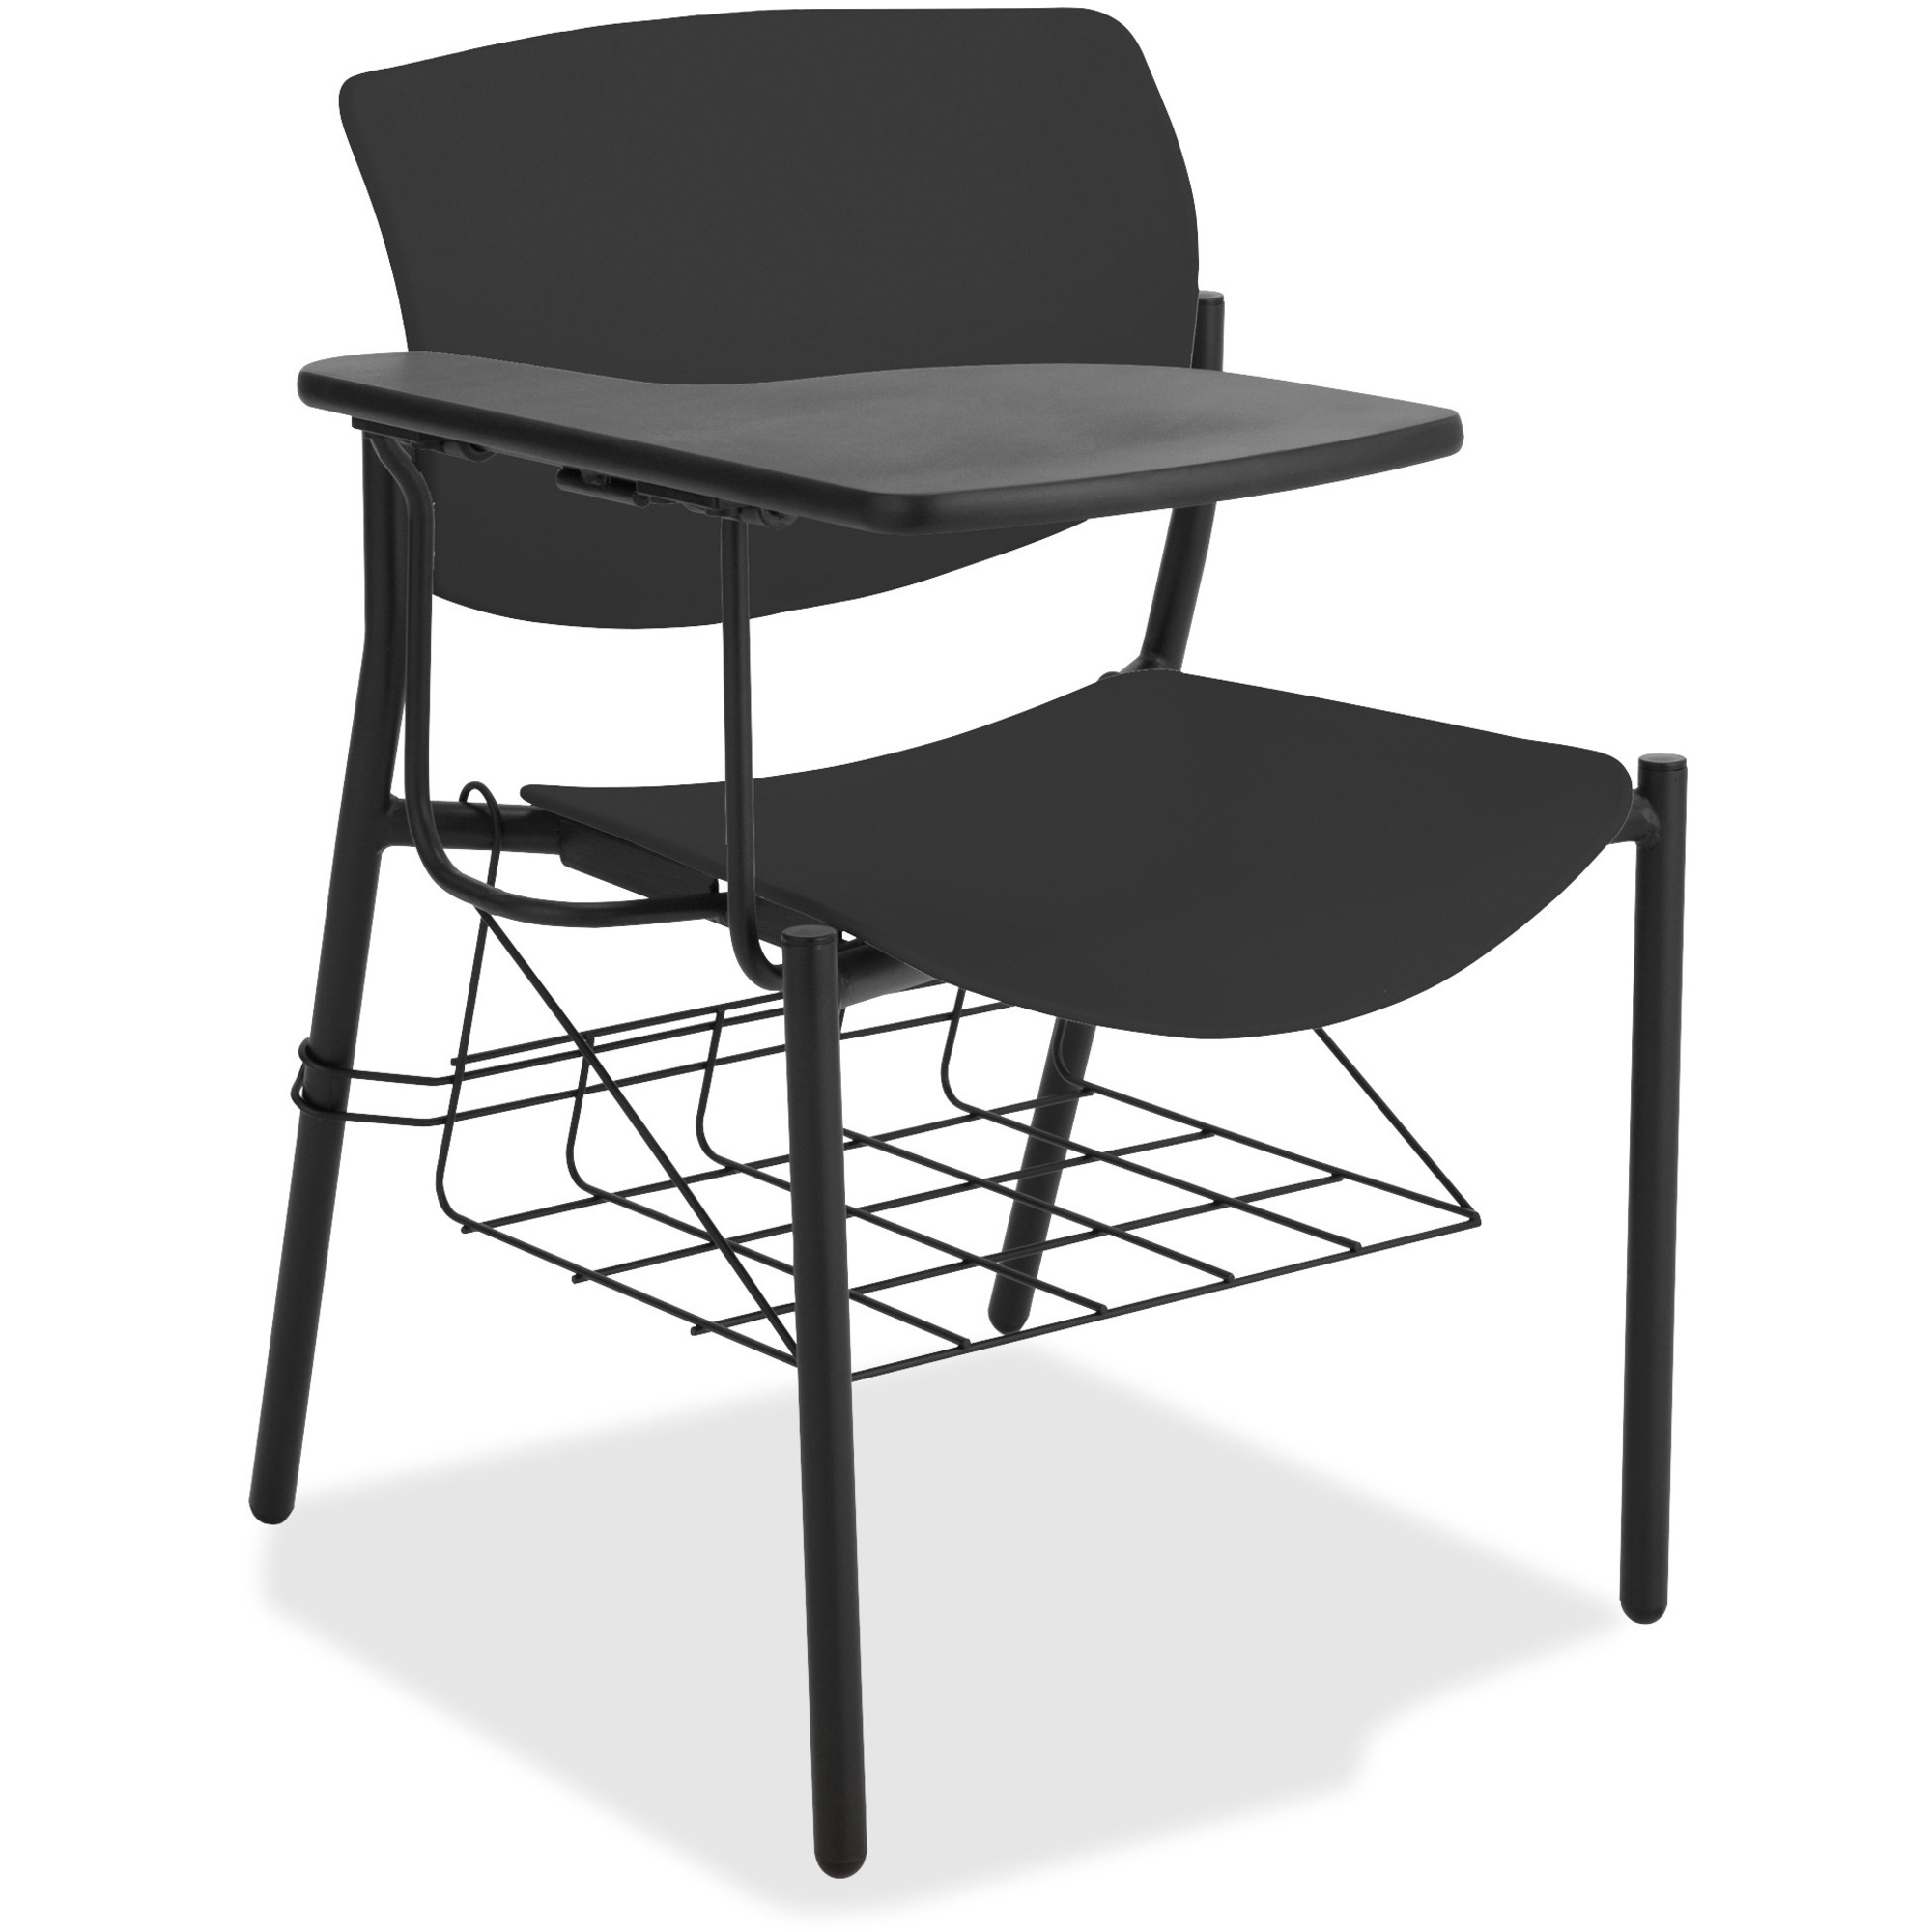 Lorell writing tablet student chairs tubular steel powder coated black frame four